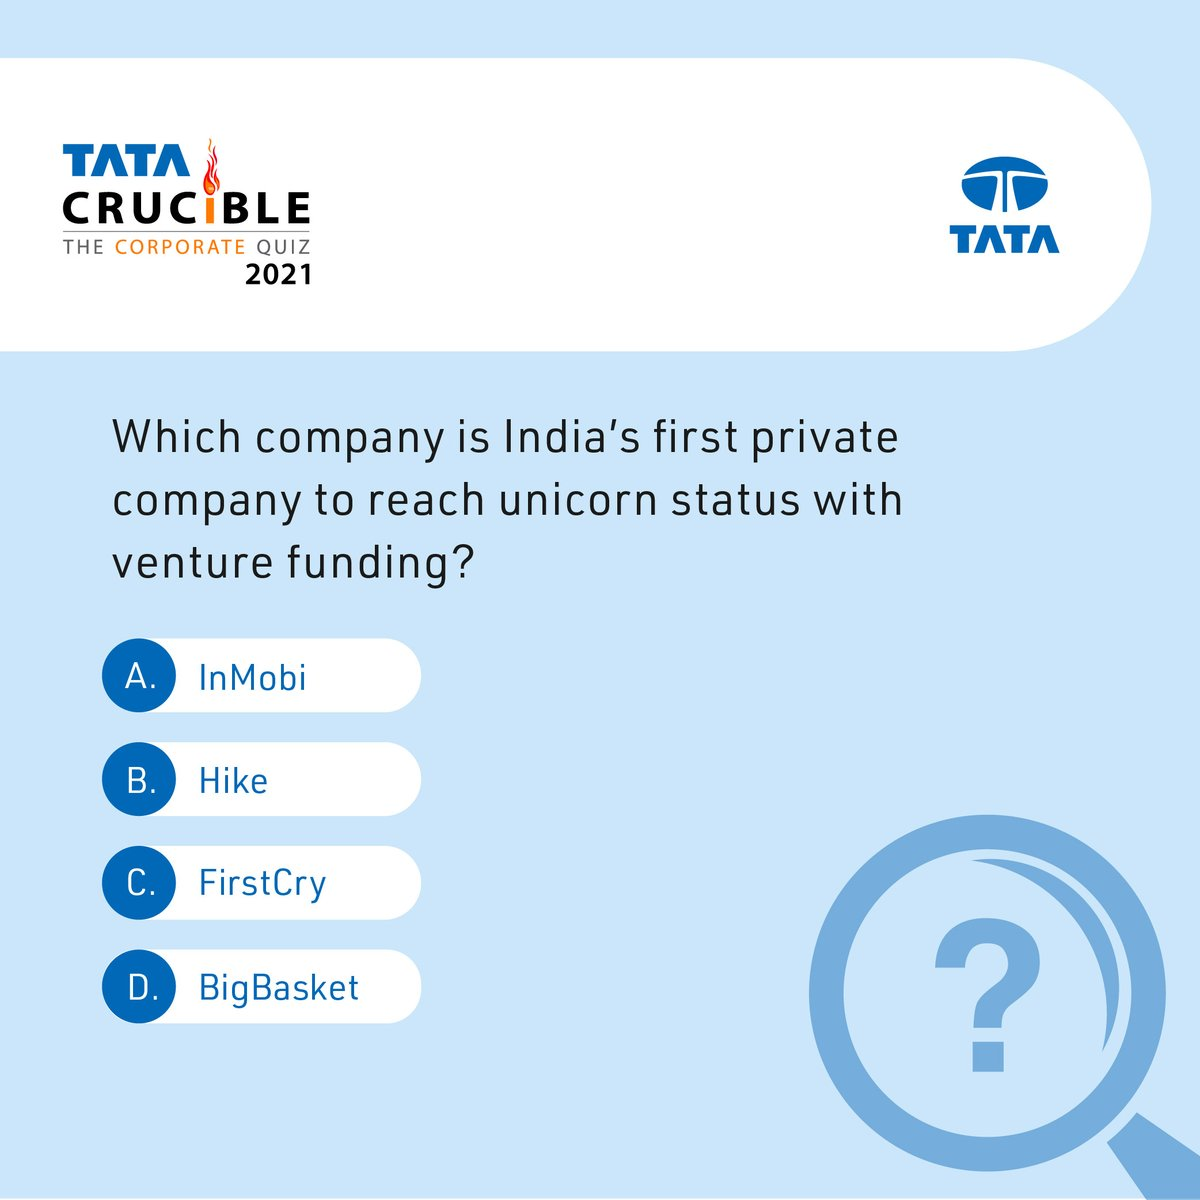 It's time for the weekly #TataCrucibleContest! Just answer this question and stand a chance to win a prize*. #Contest #ContestAlert *T&C apply. https://t.co/uxYcyelfTl